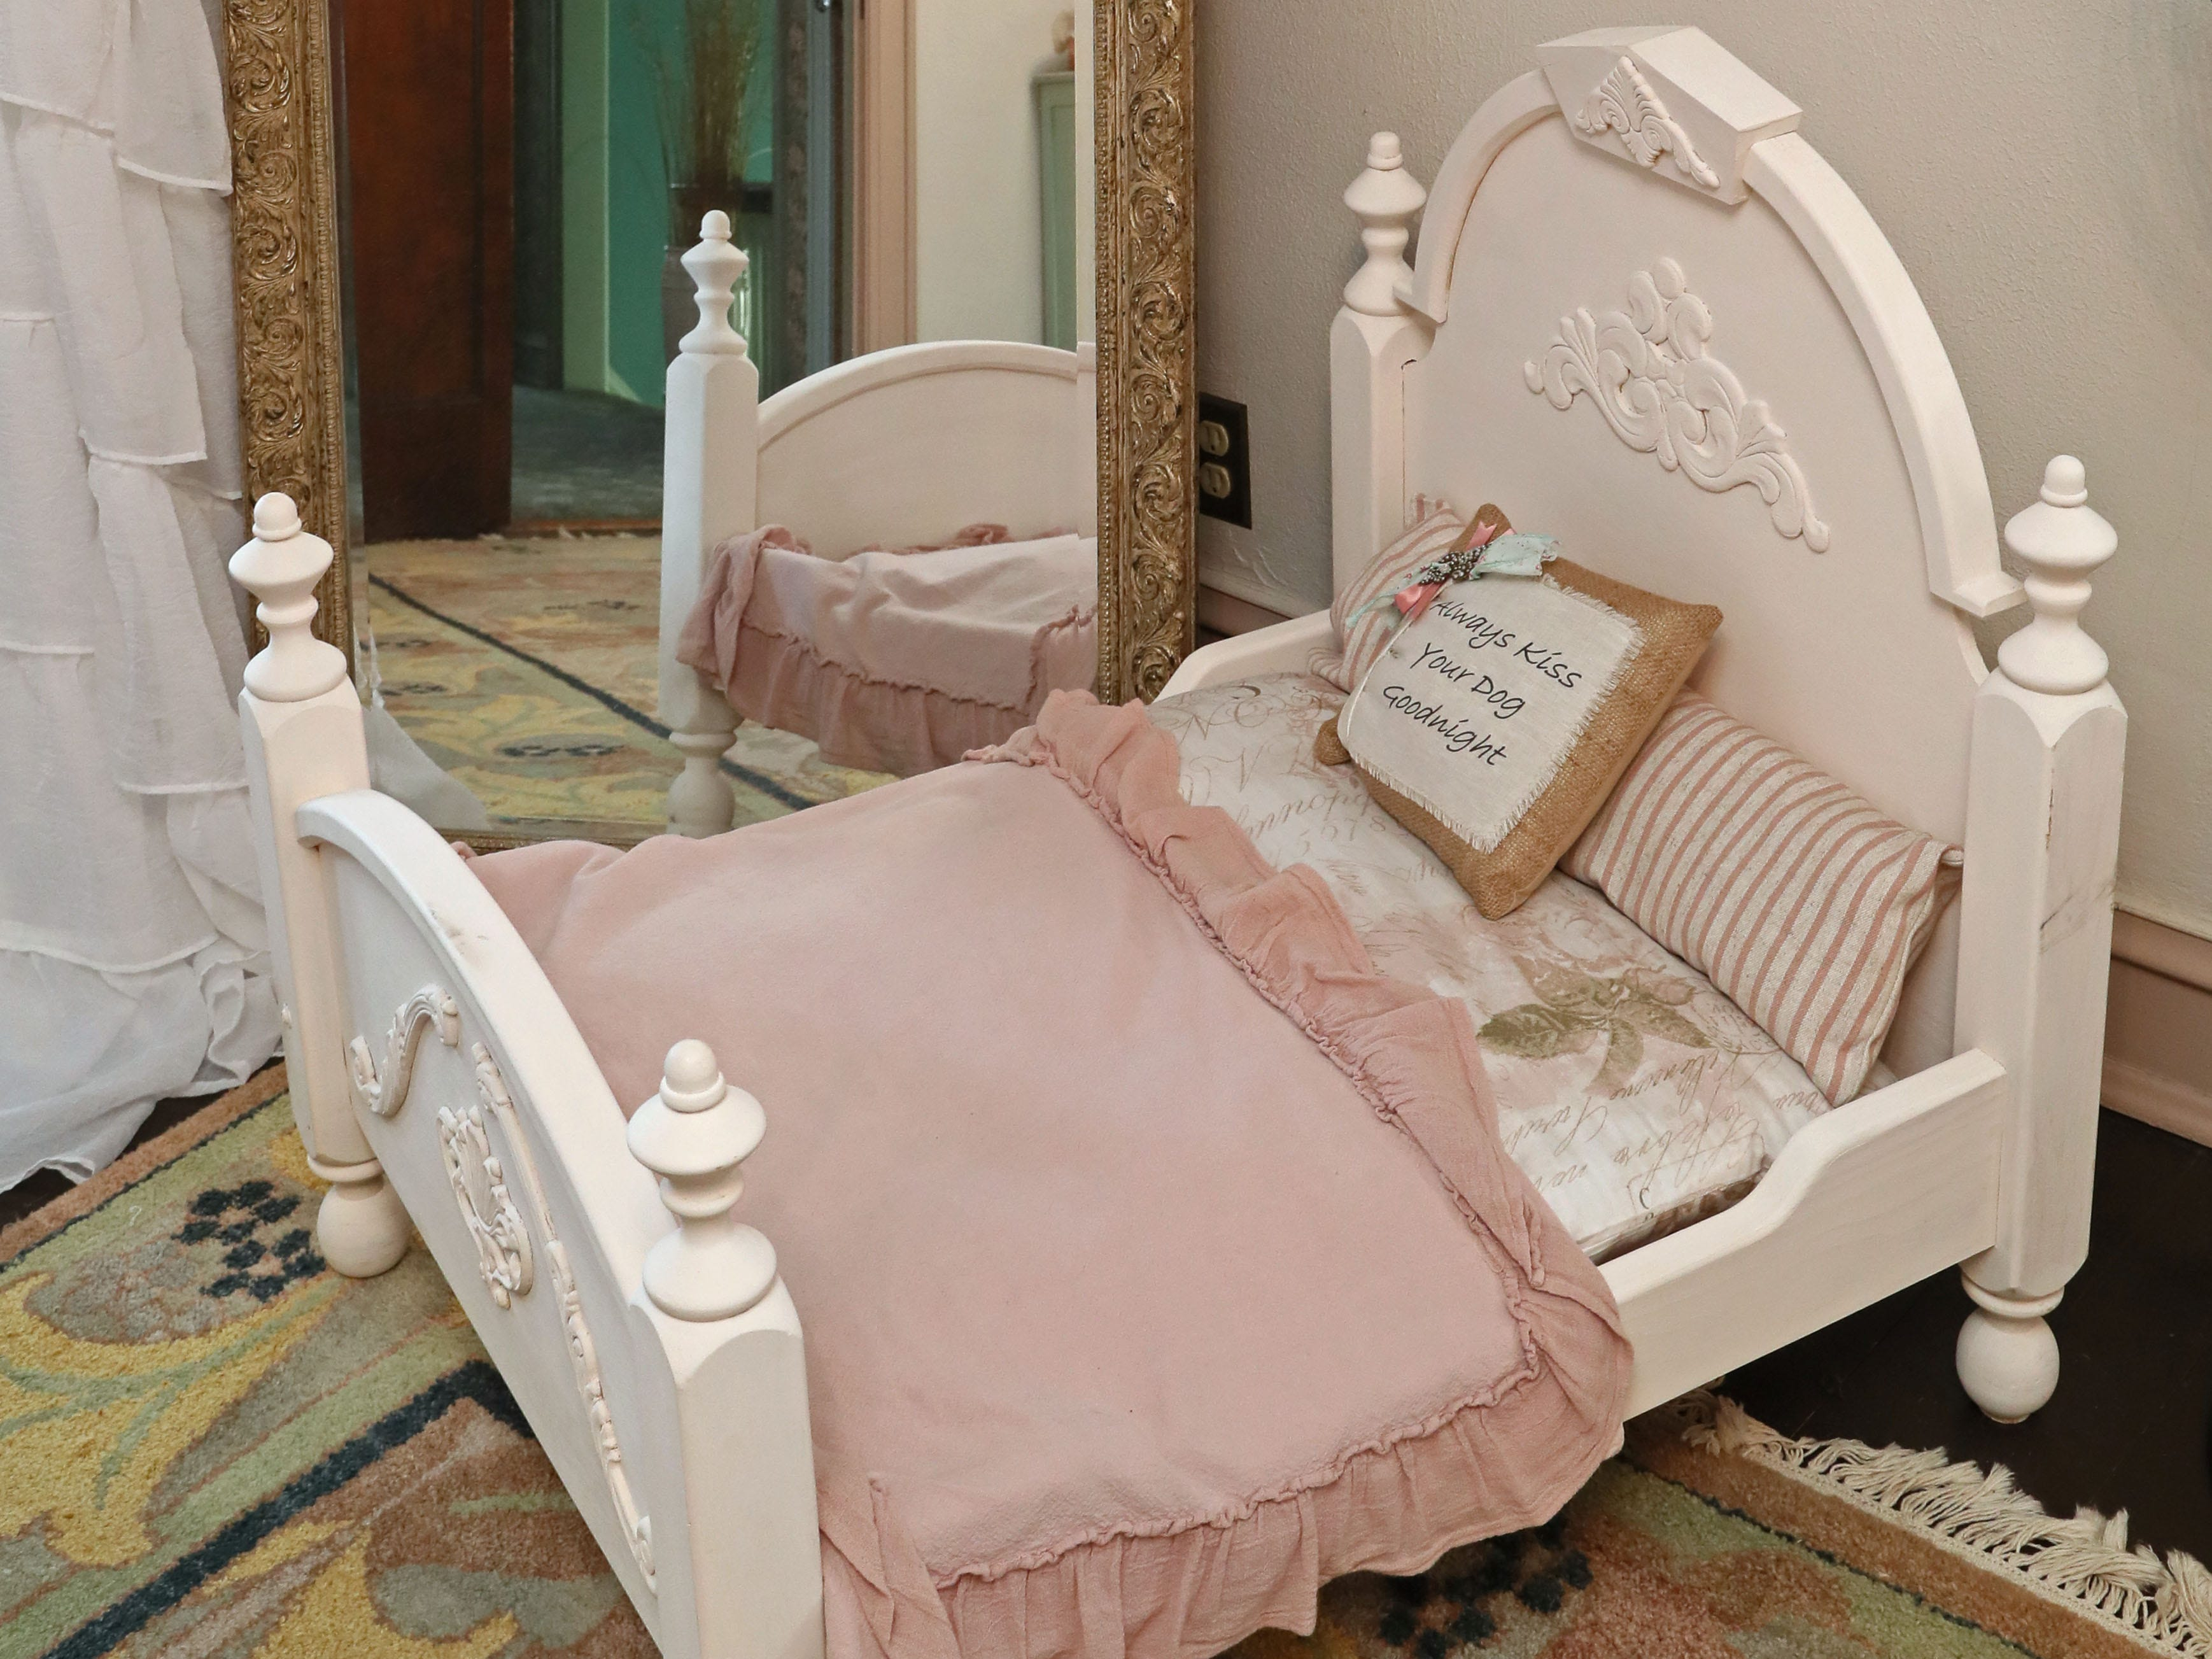 This dog's bed in the master bedroom was made by Zoe Krause's father.